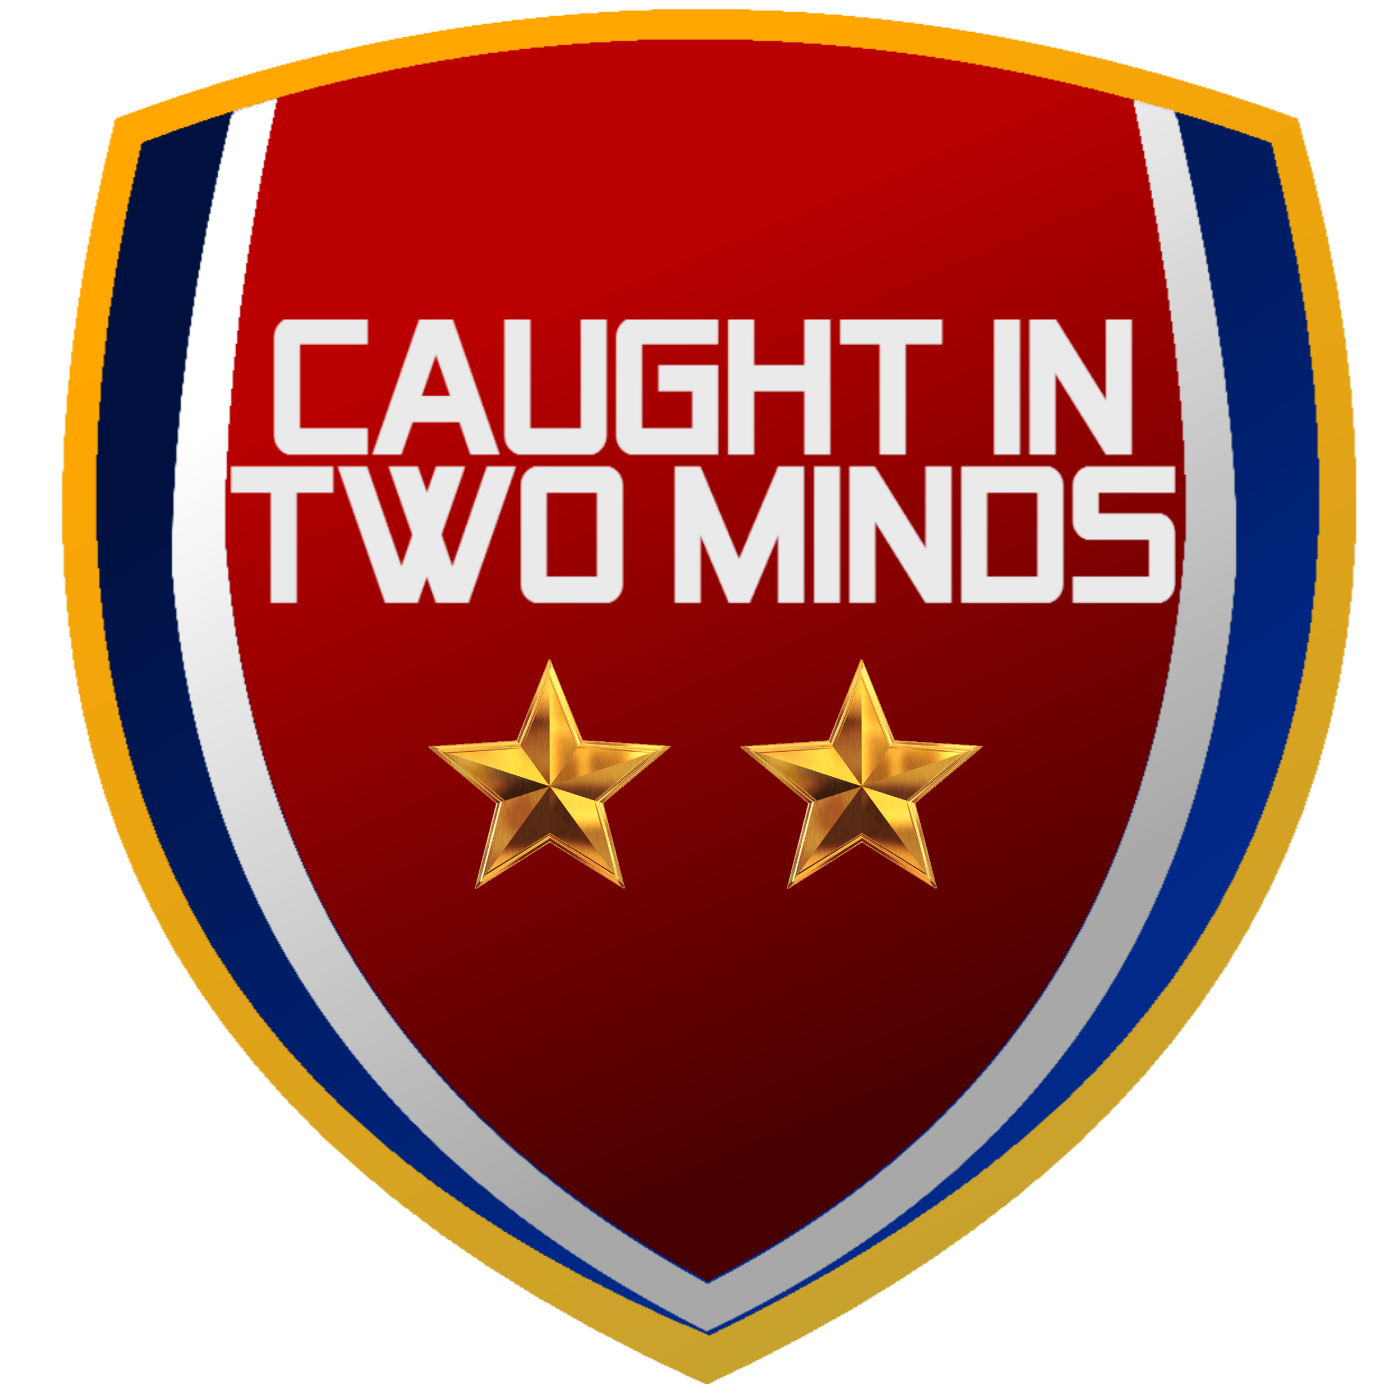 #27 - Caught In Two Minds